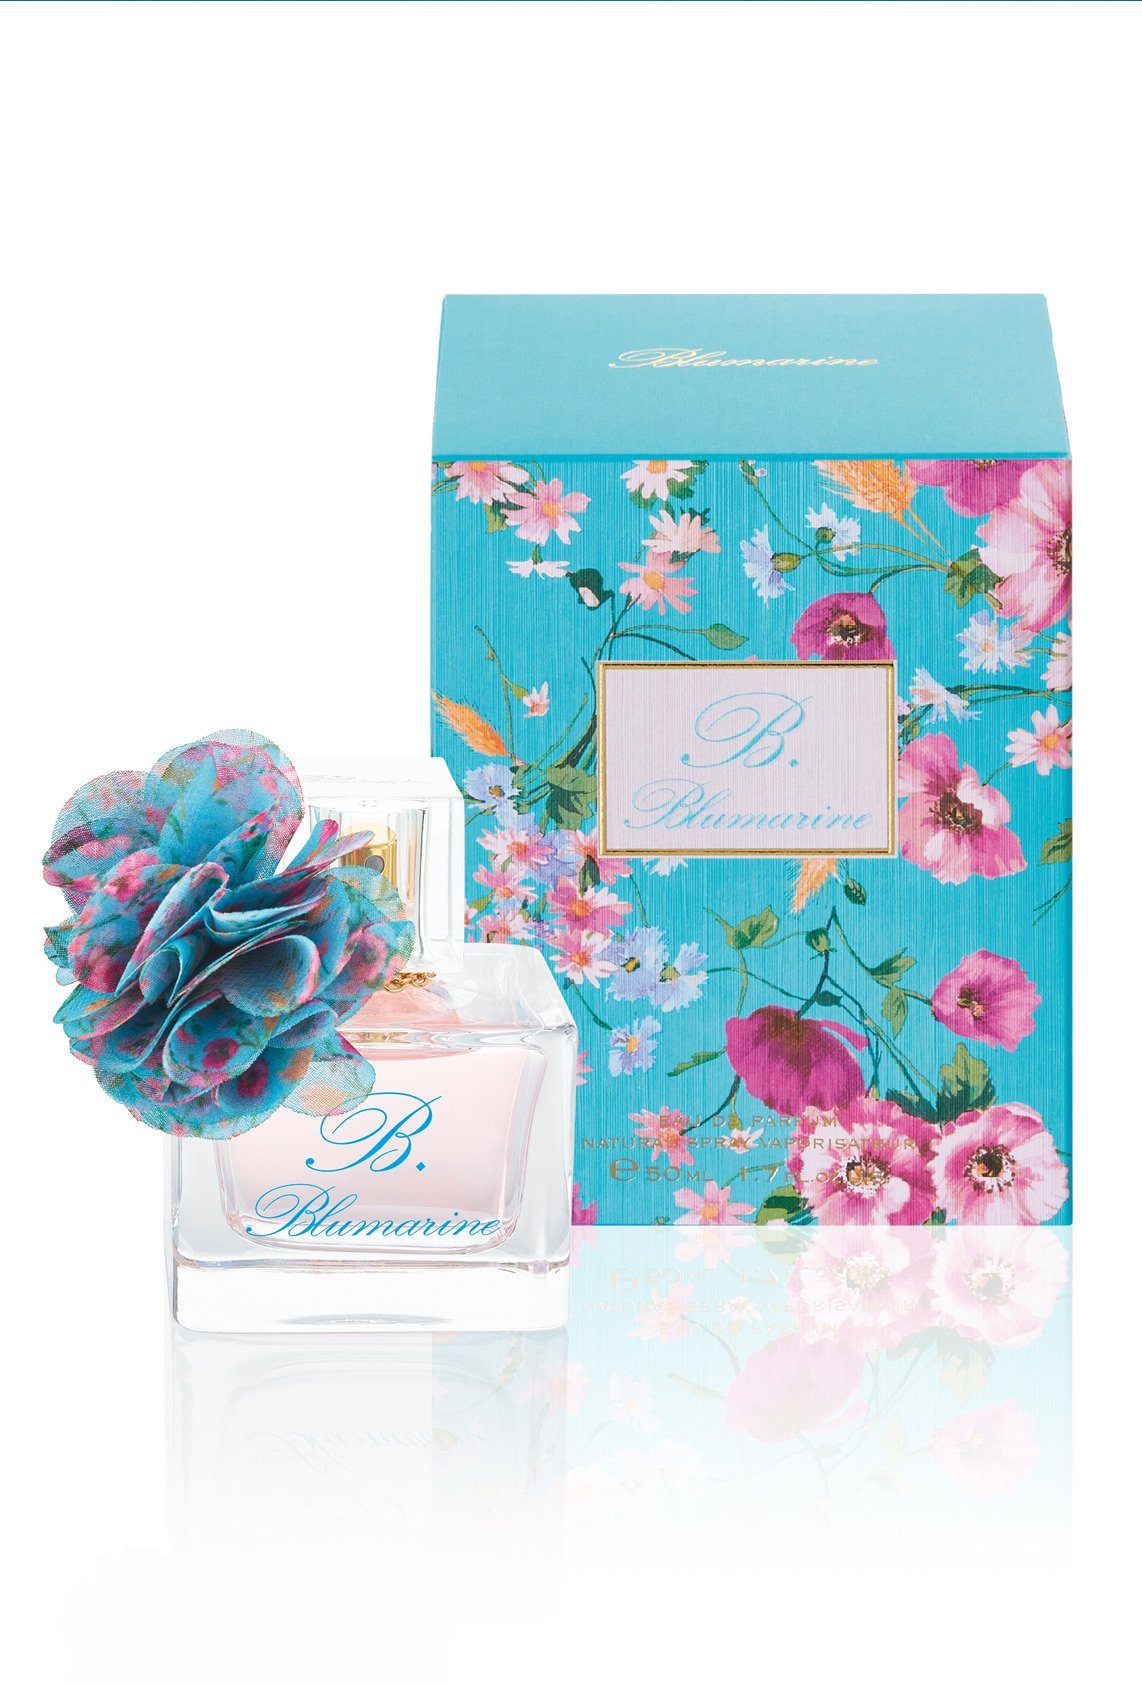 The new B. Blumarine Fragrance